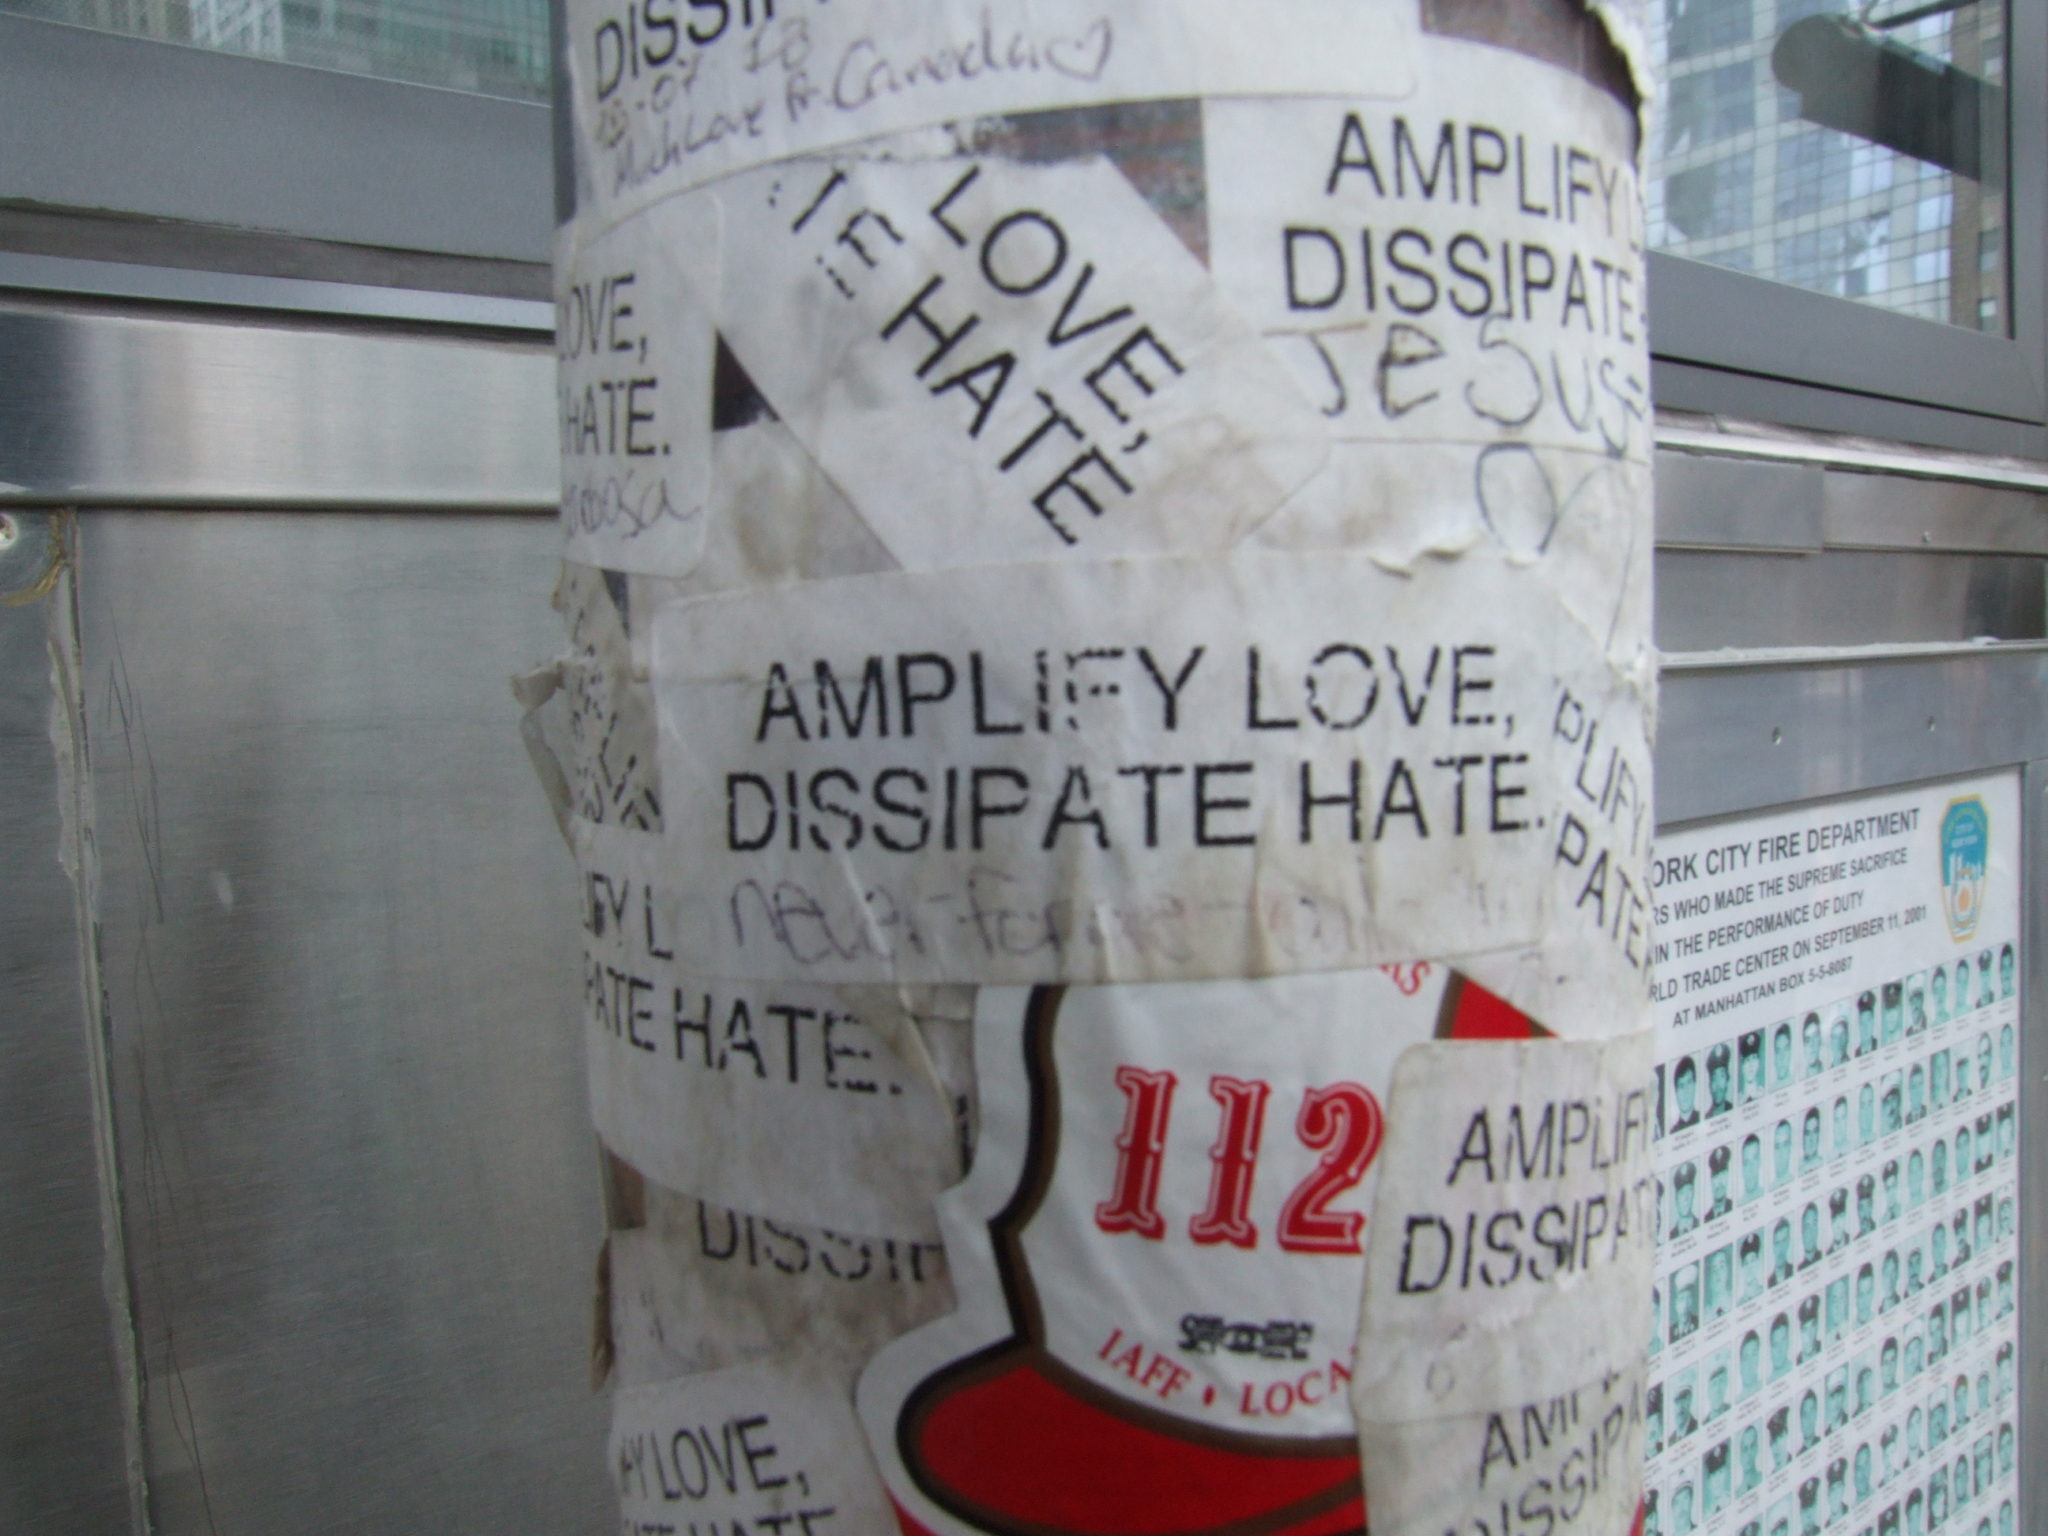 Amplify Love, Dissipate Hate. These stickers were plastered near a firehouse near the site.  I love that someone could still see the most important message of all despite the pain.